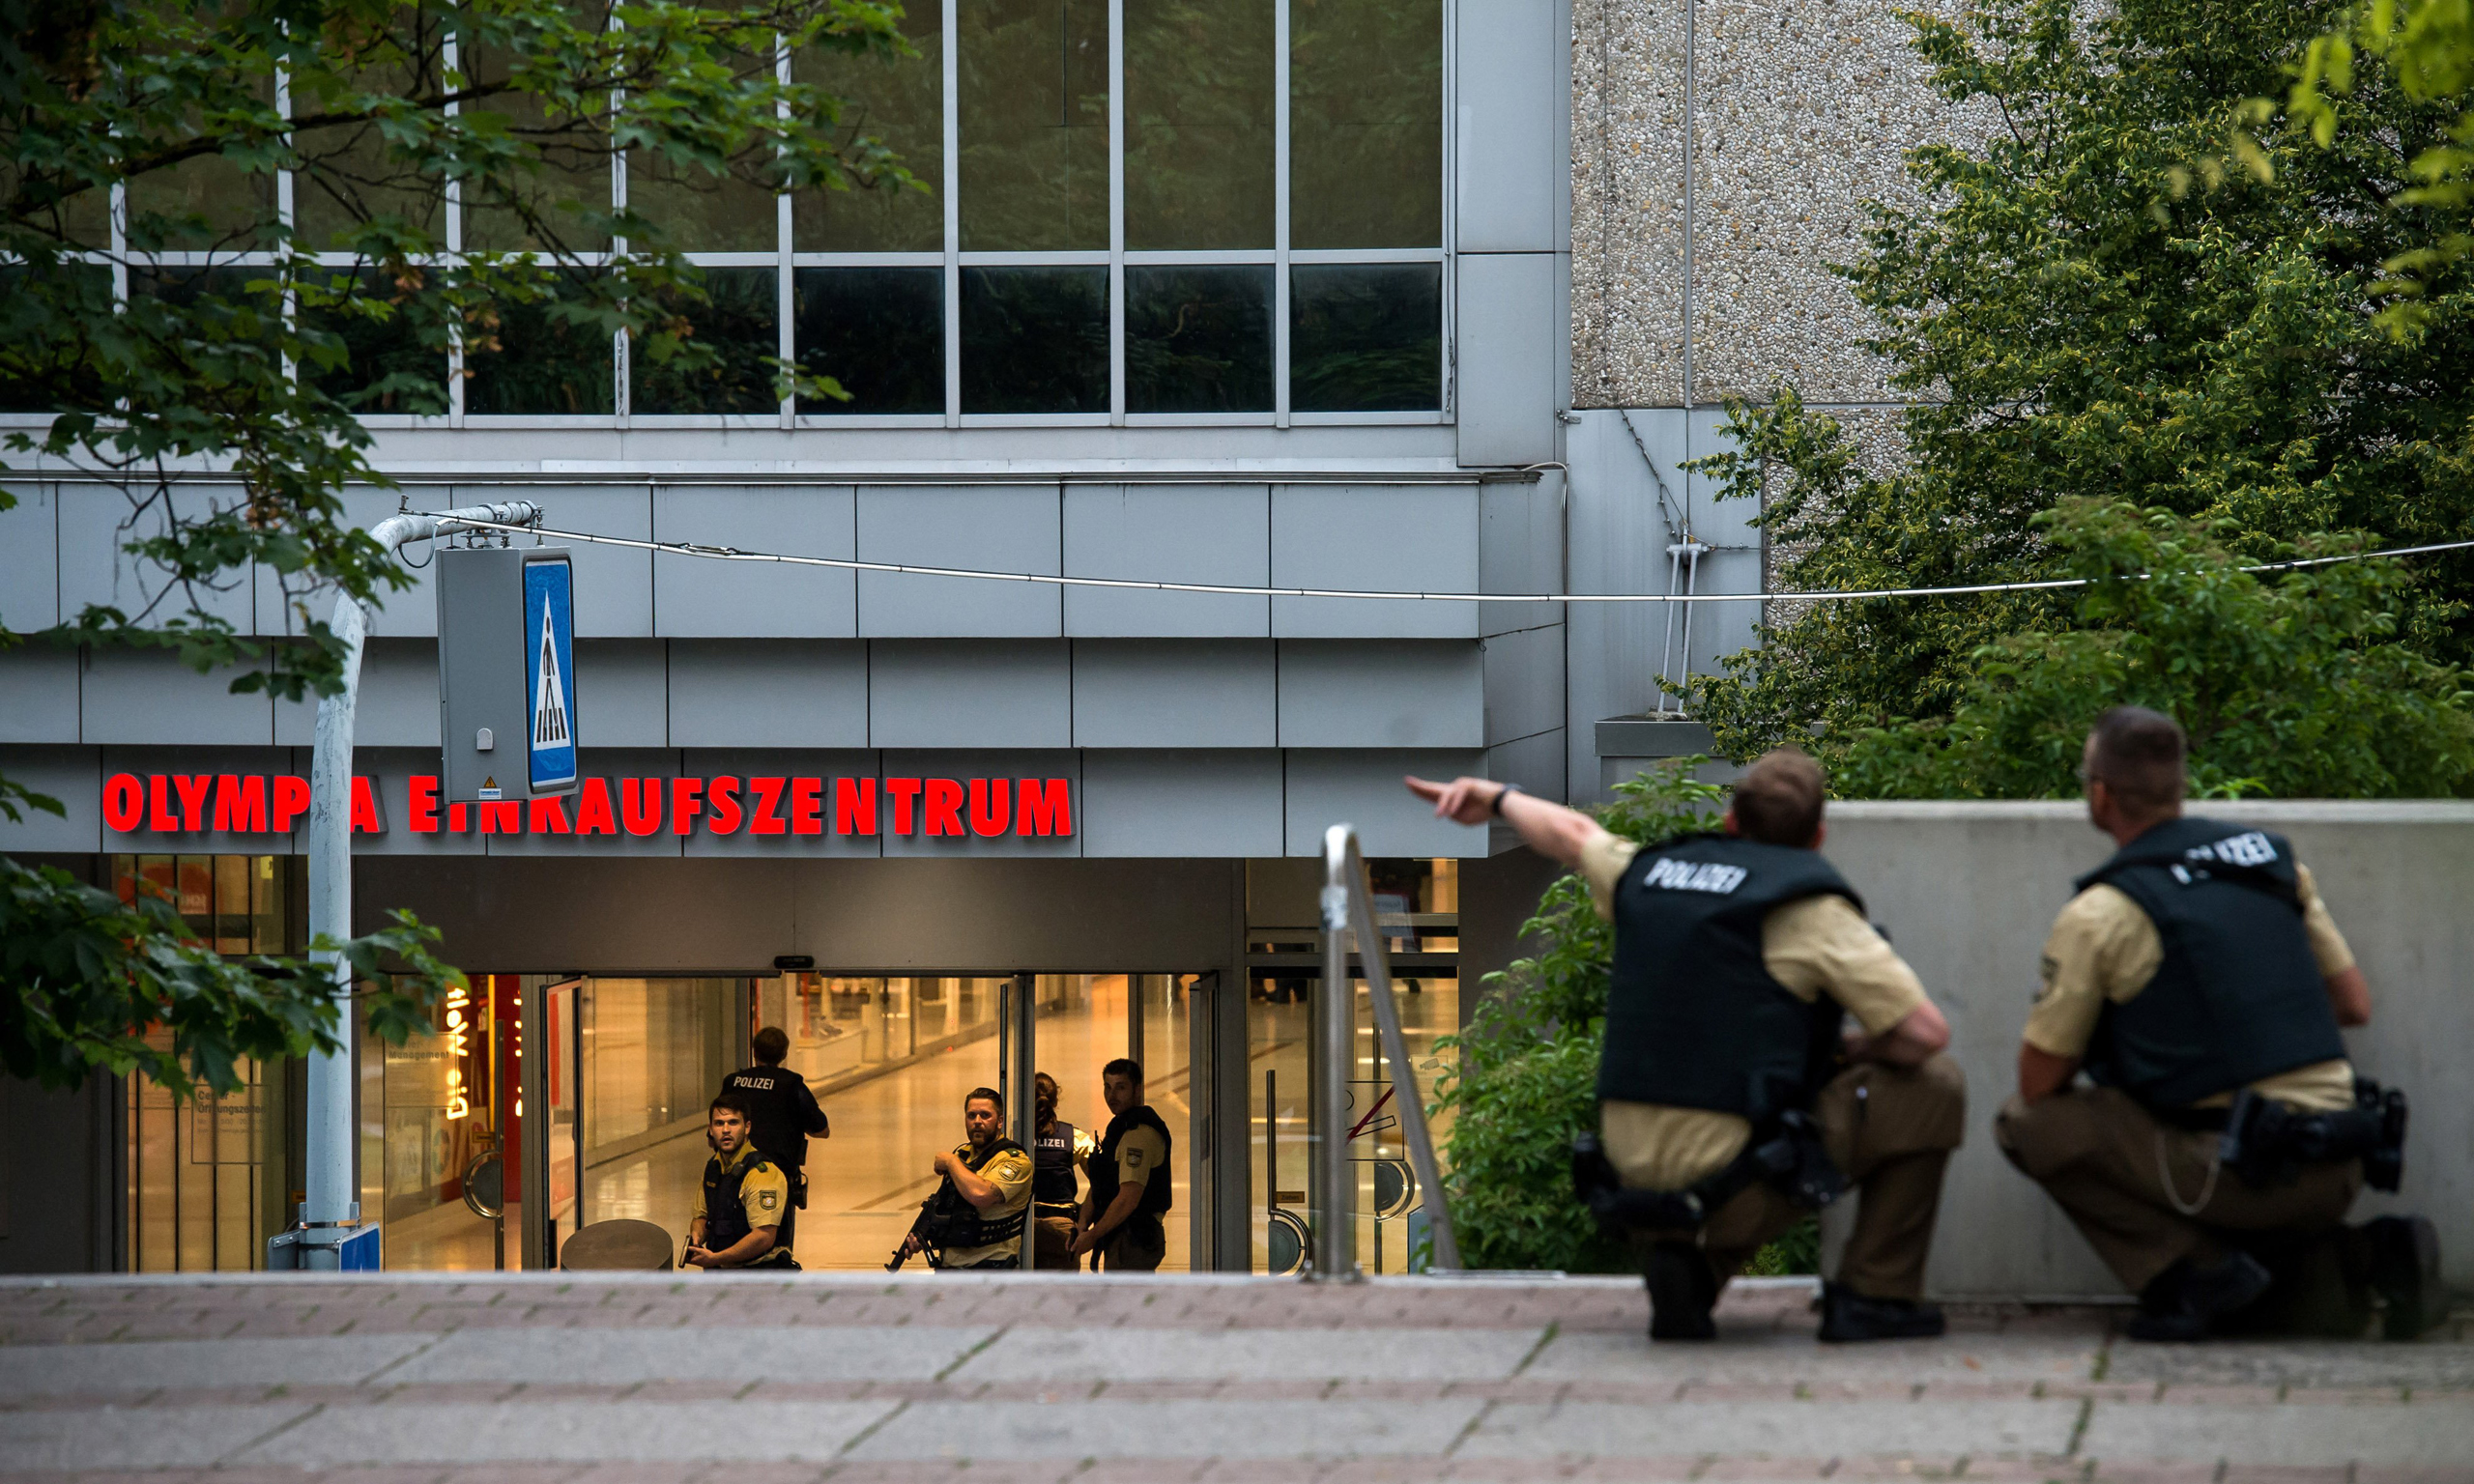 Police officers respond to a shooting at the Olympia Einkaufzentrum (OEZ) in Munich, Germany on July 22, 2016.